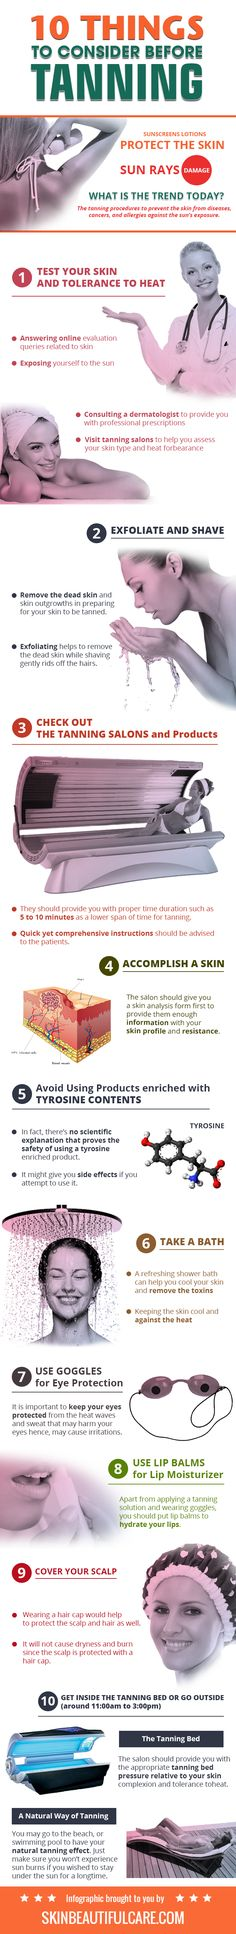 10 Things to Consider before Tanning (Infographic)